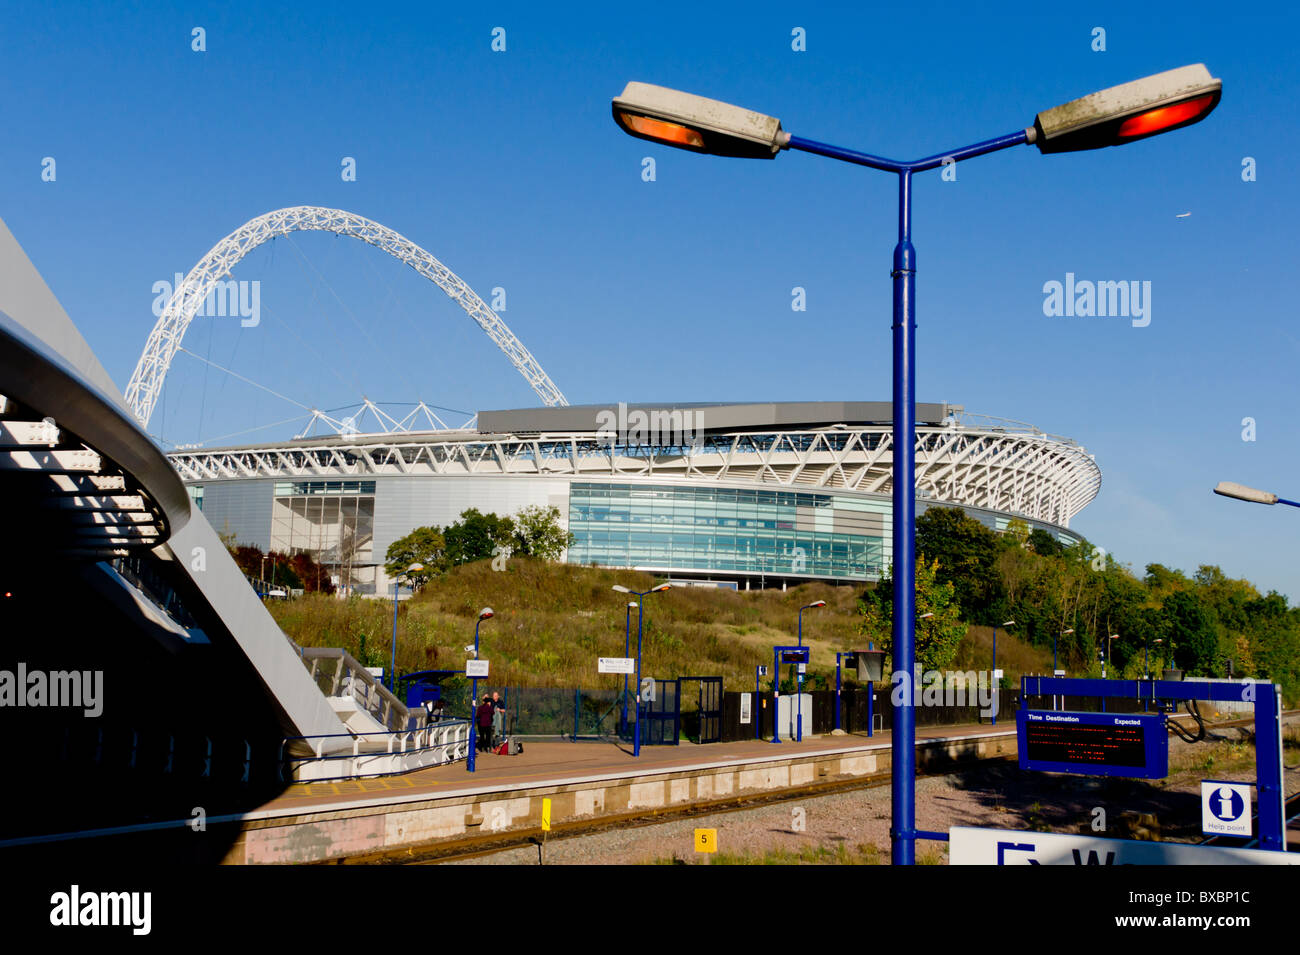 europe, UK, England, London, Wembley Stadium and station 2010 - Stock Image